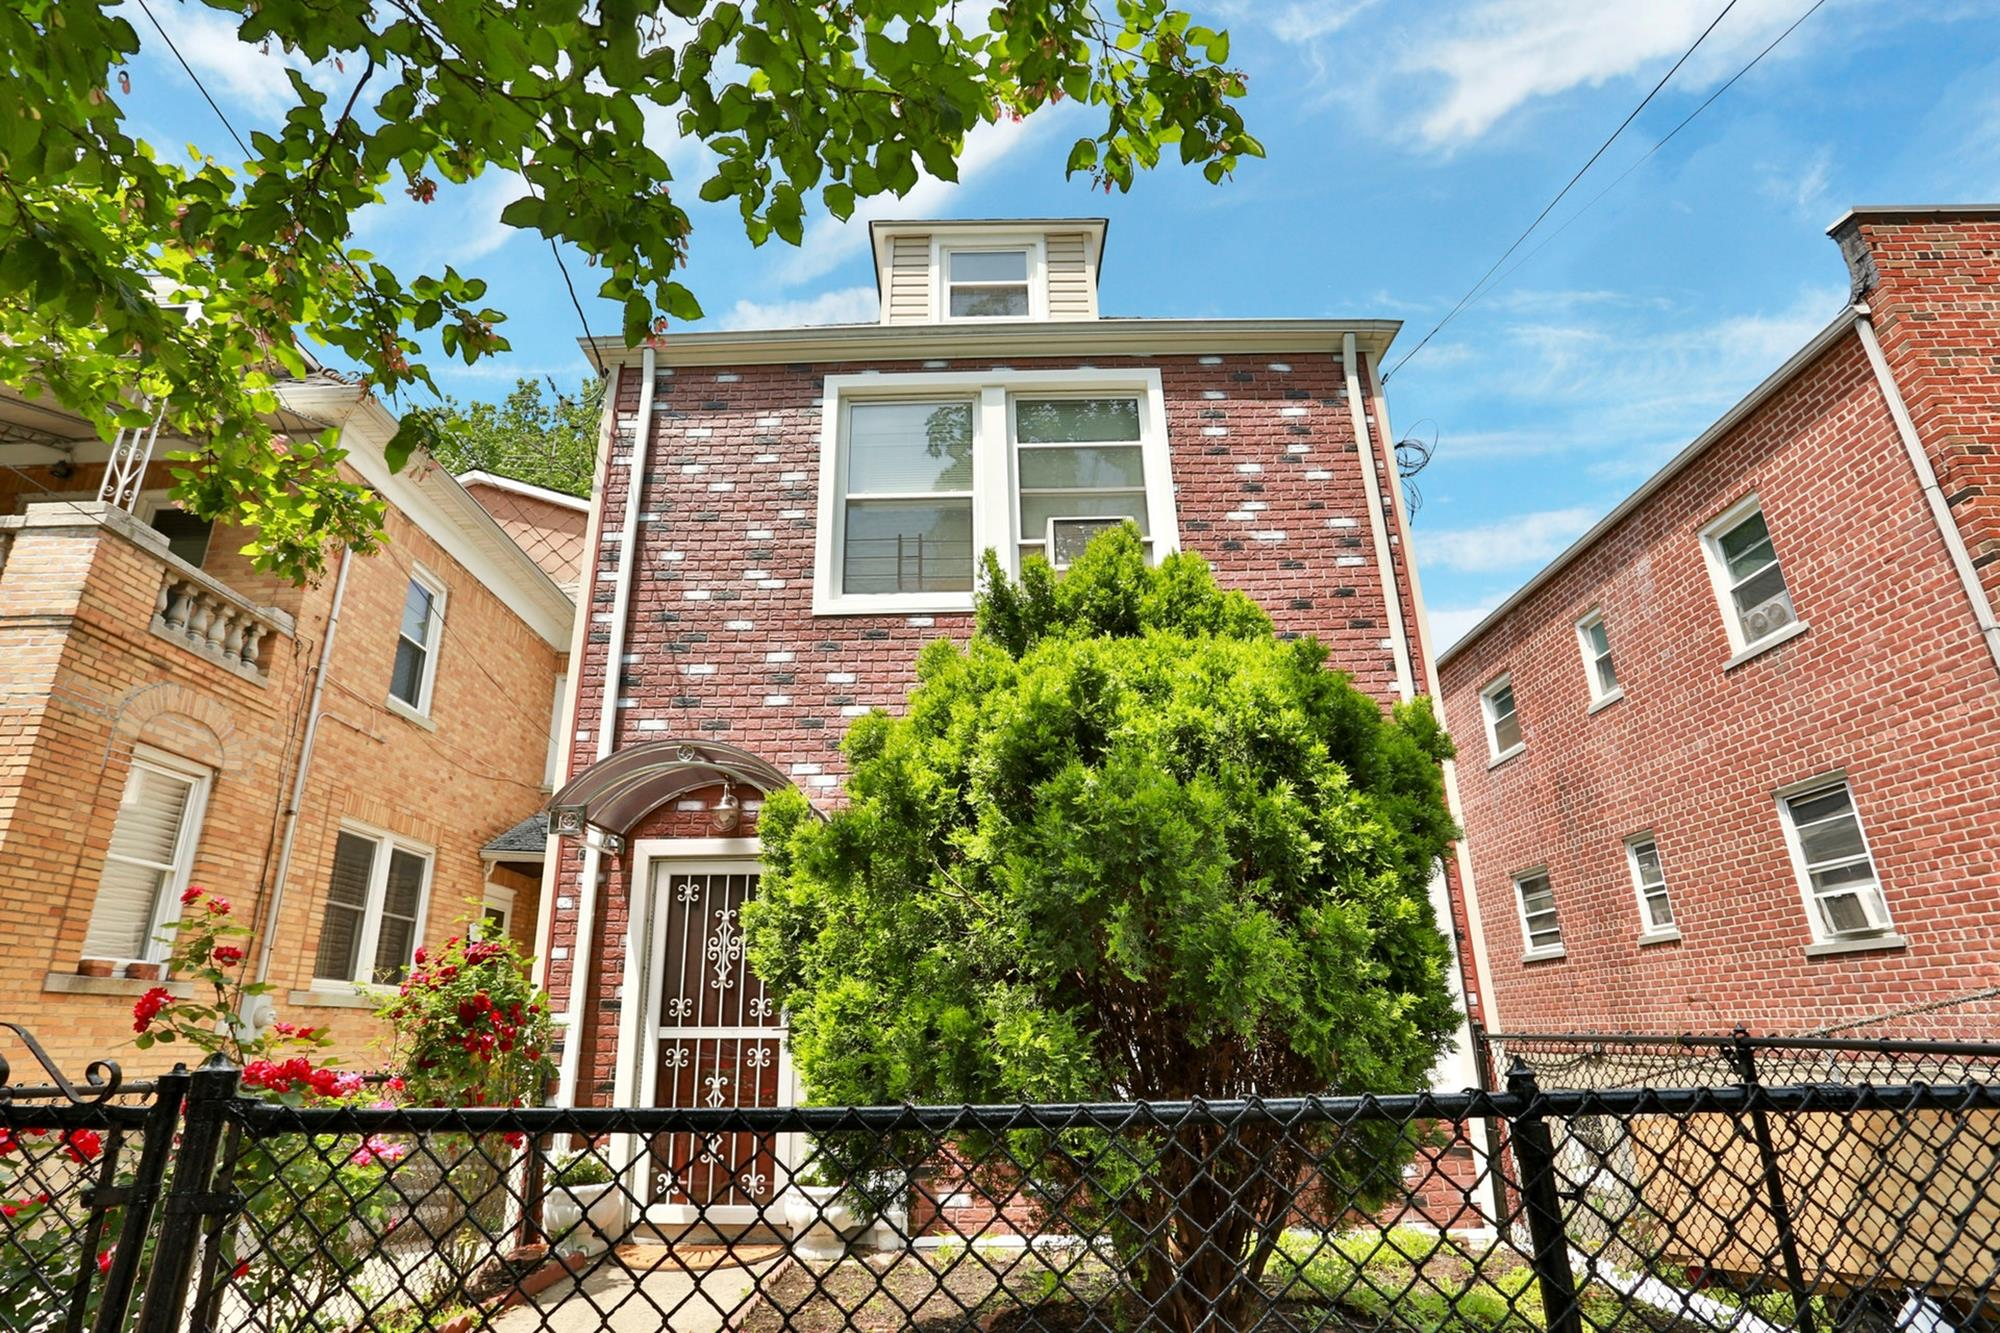 NORTH RIVERDALE: 3-Bd. House w/ Deck on West 261st Street